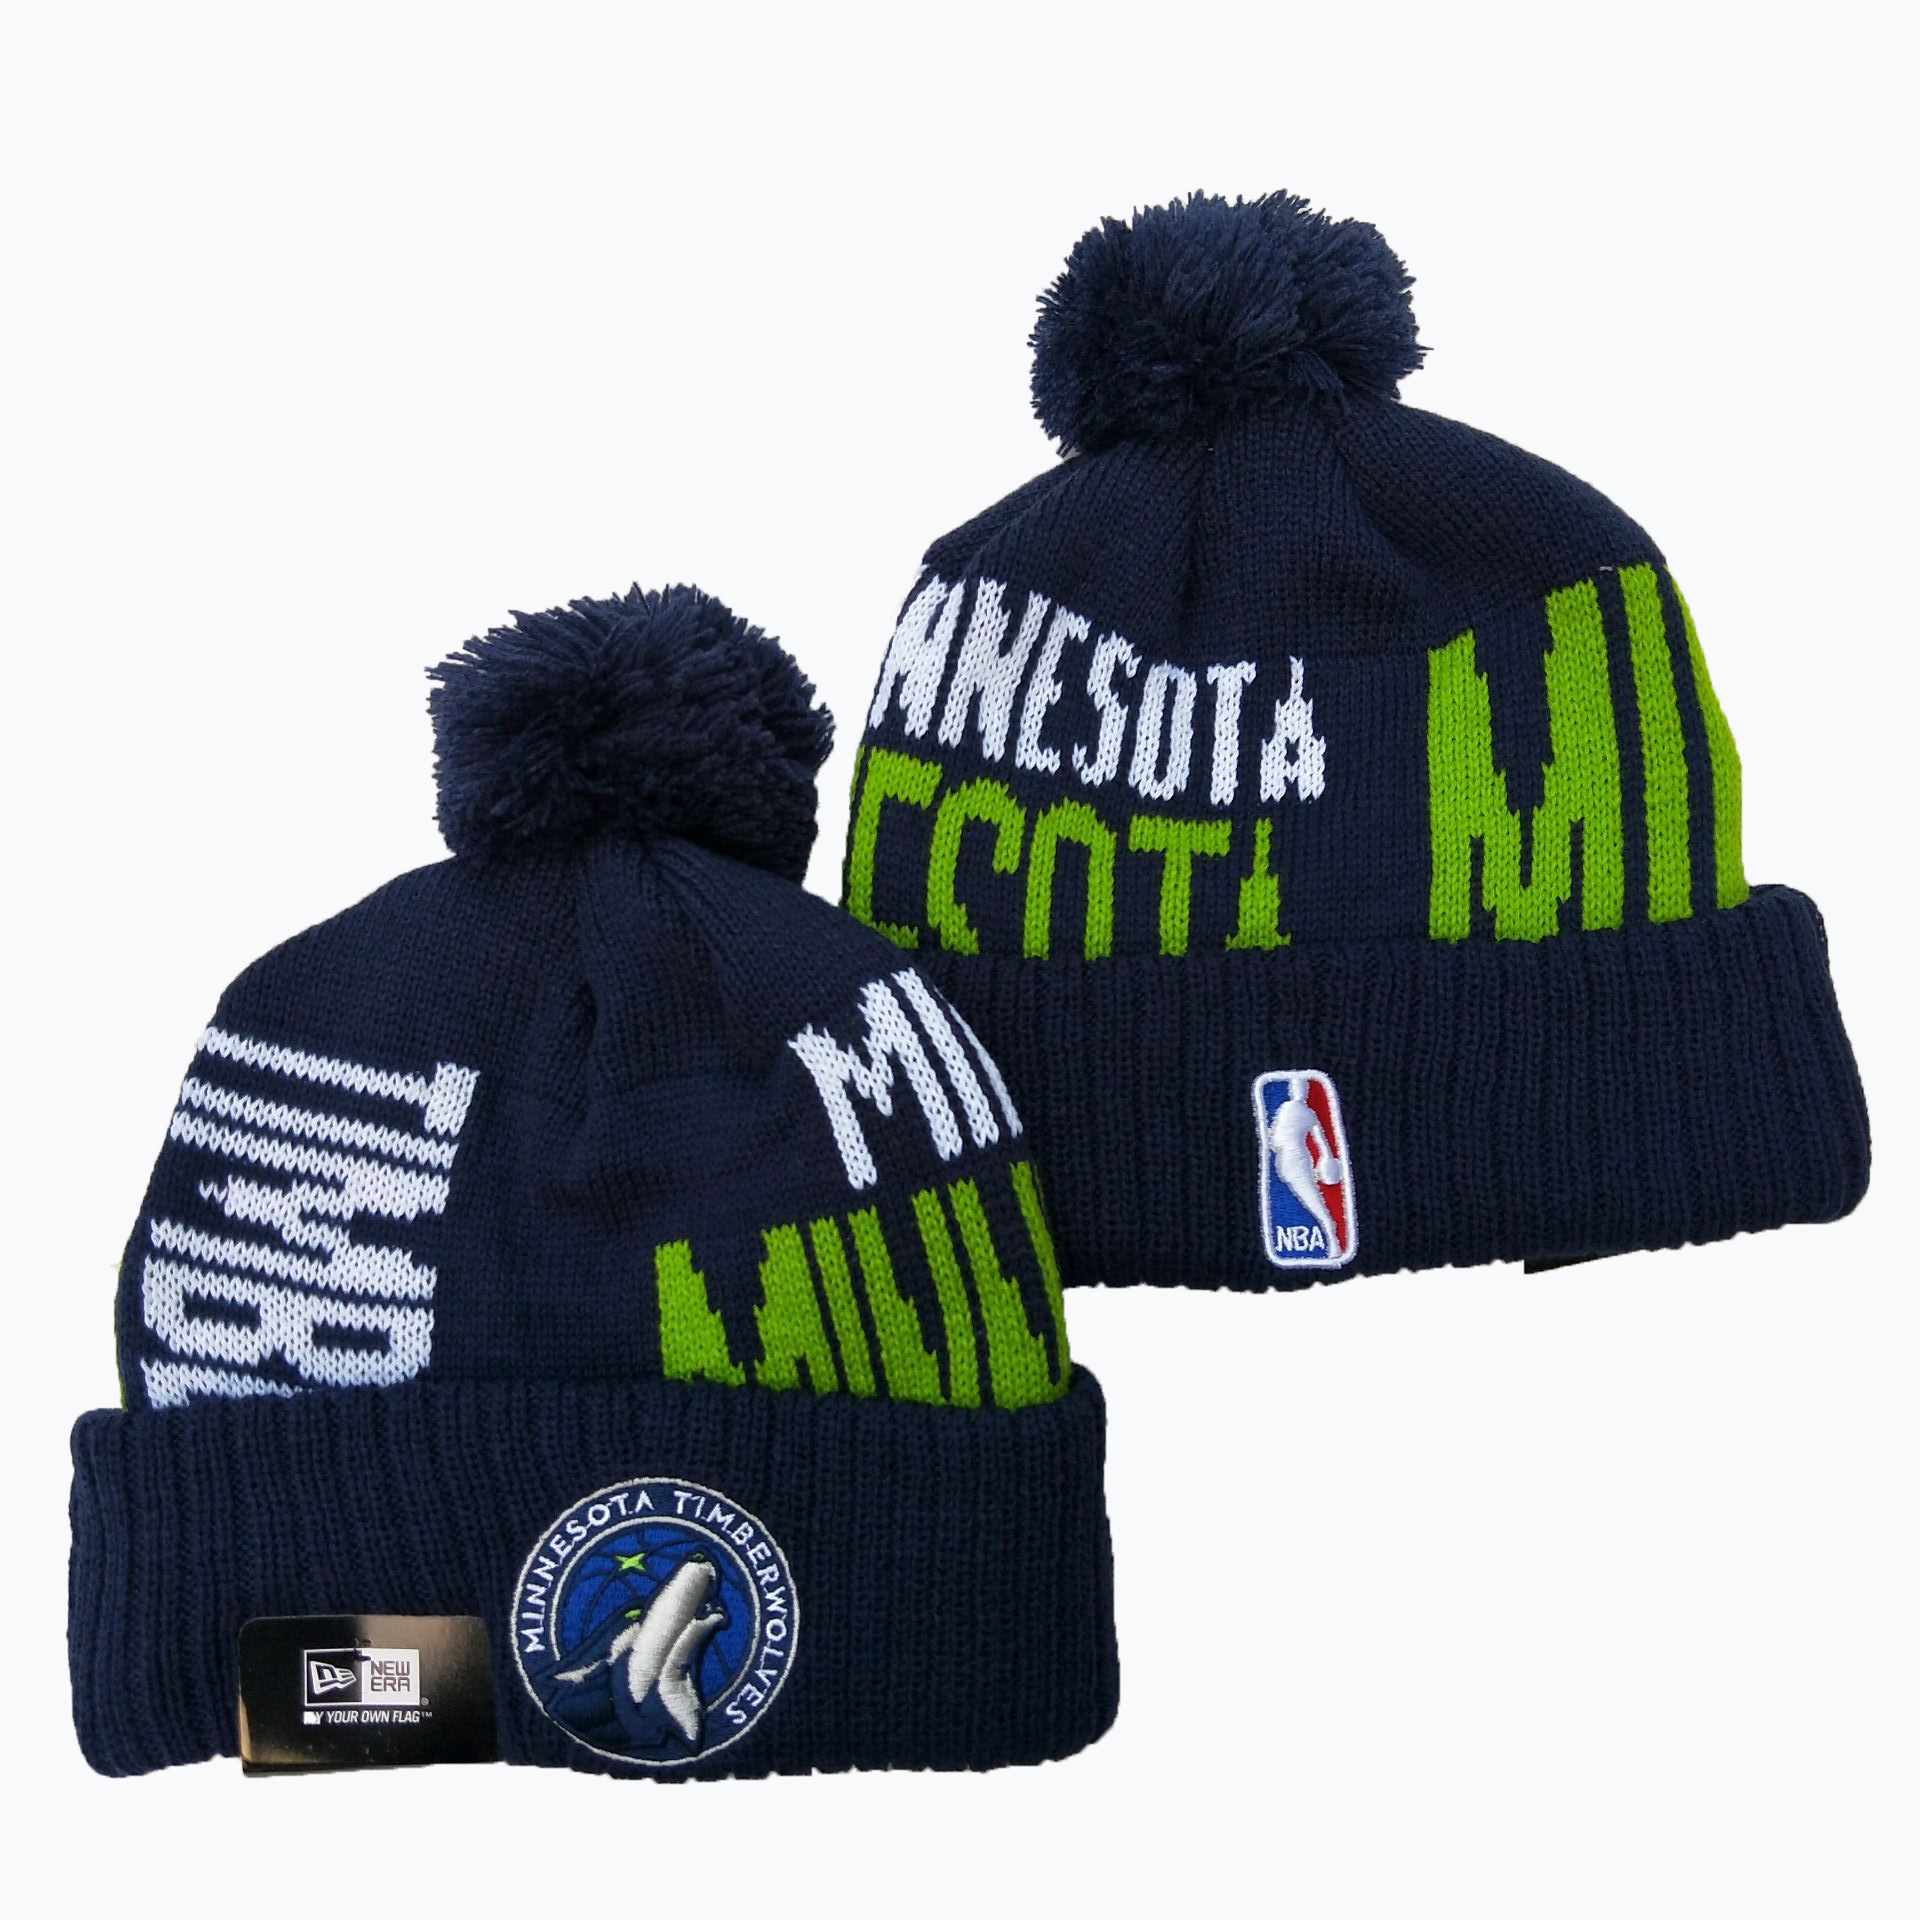 Timberwolves Team Logo Navy Pom Knit Hat YD